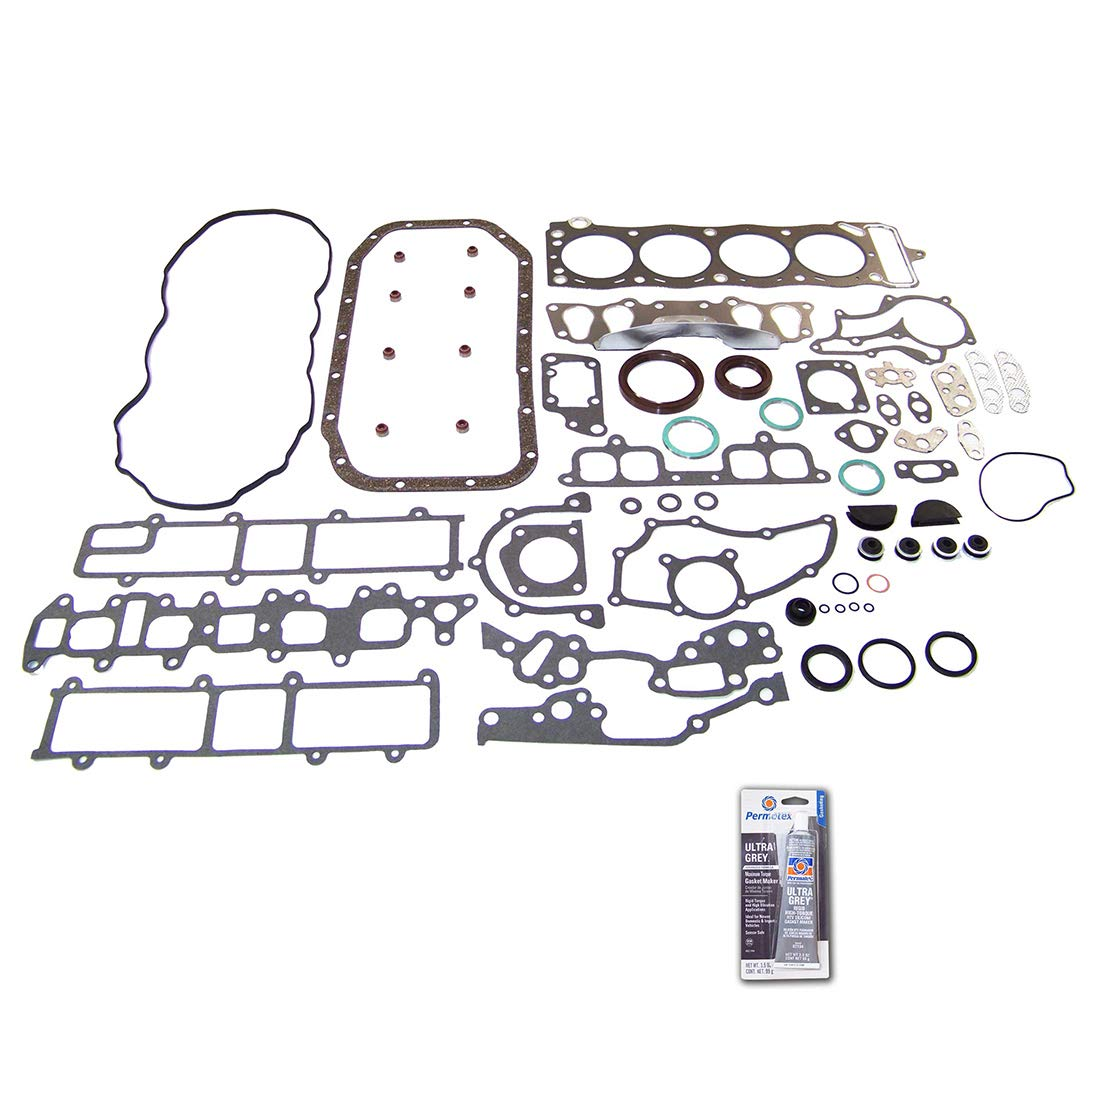 DNJ ENGINE COMPONENTS FGS9000 Engine Kit Gasket Set